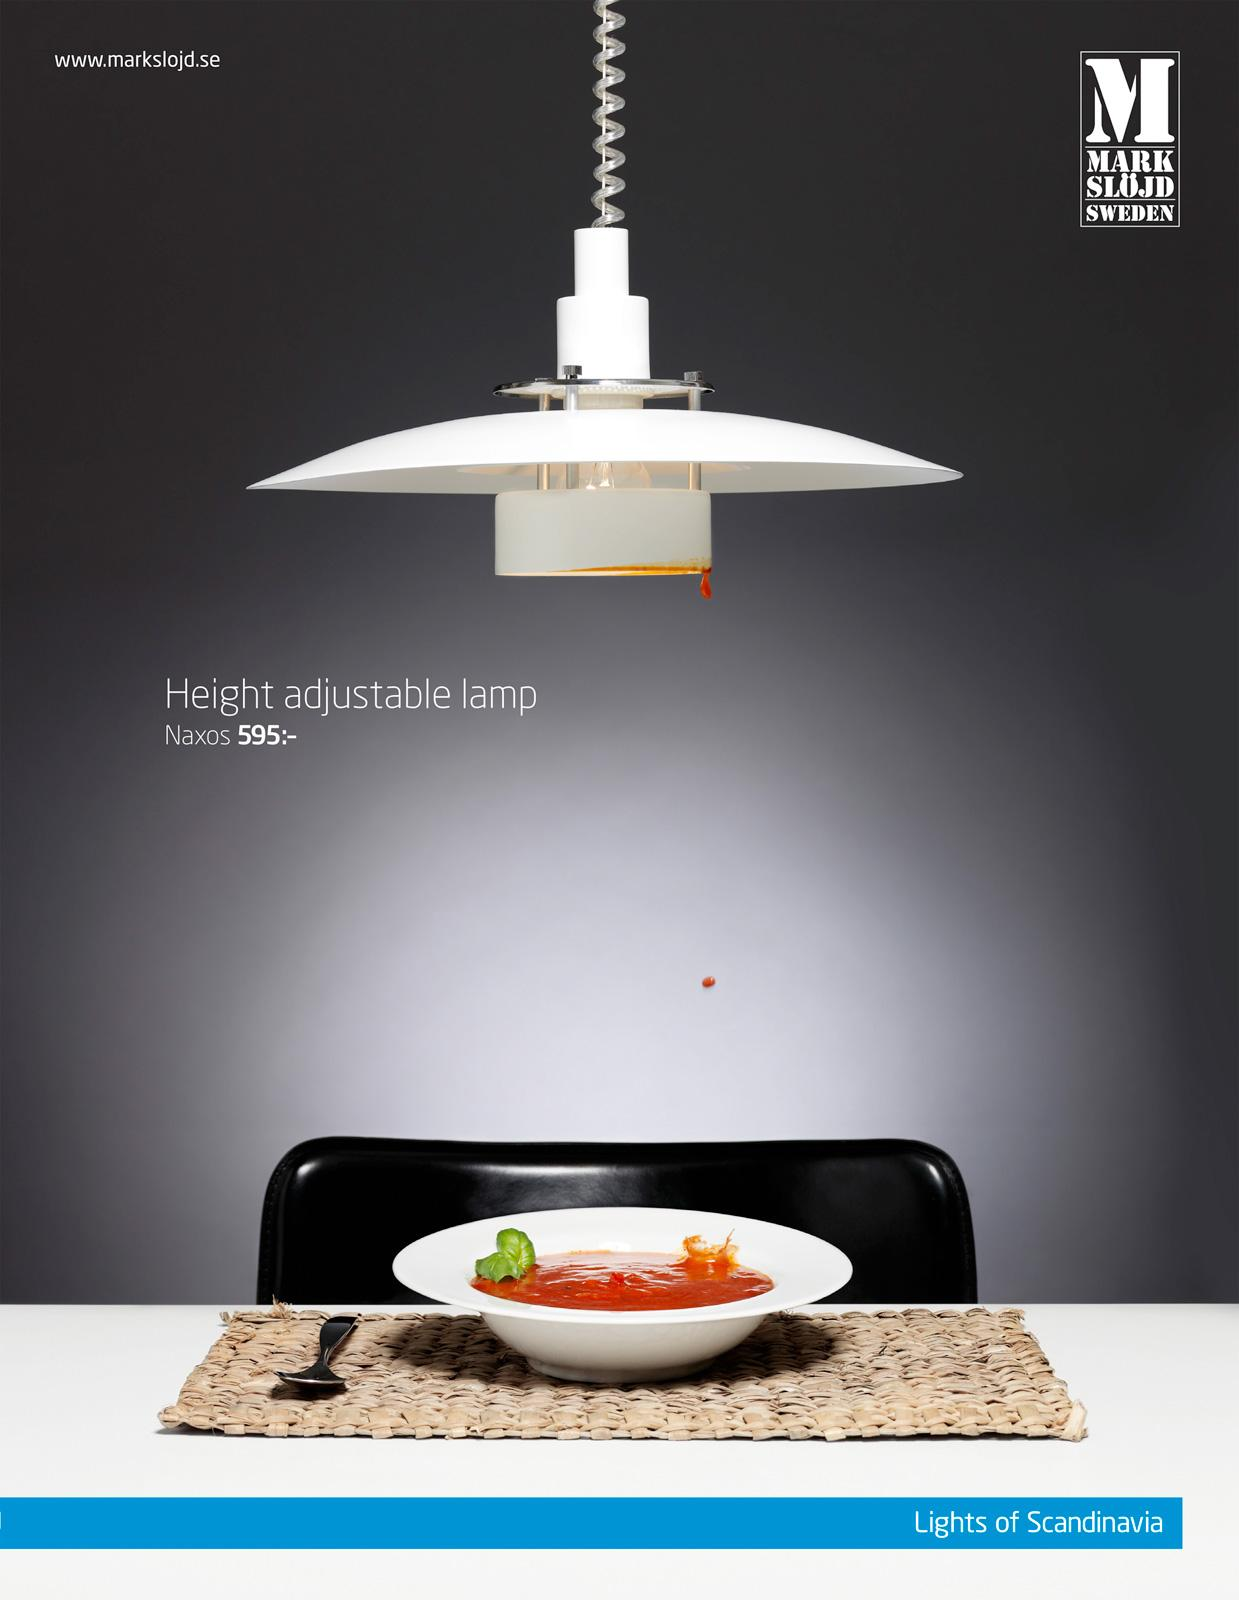 Markslöjd Print Ad -  Height adjustable kitchen lamp